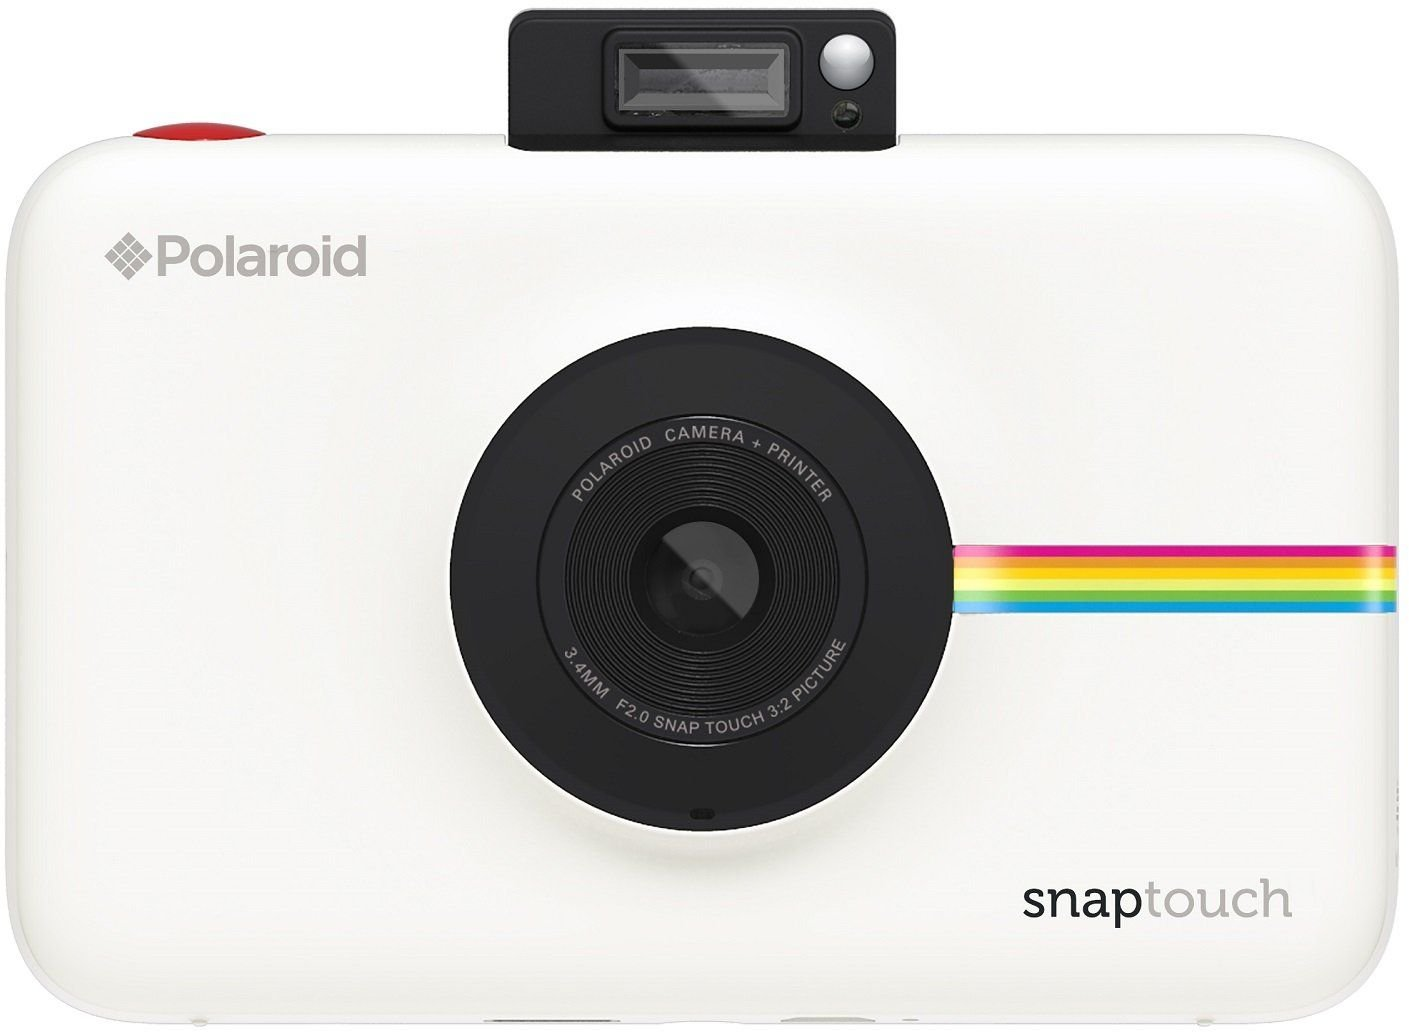 61vSpPCK2FL. SL1409  - Polaroid Snap special Function and Review